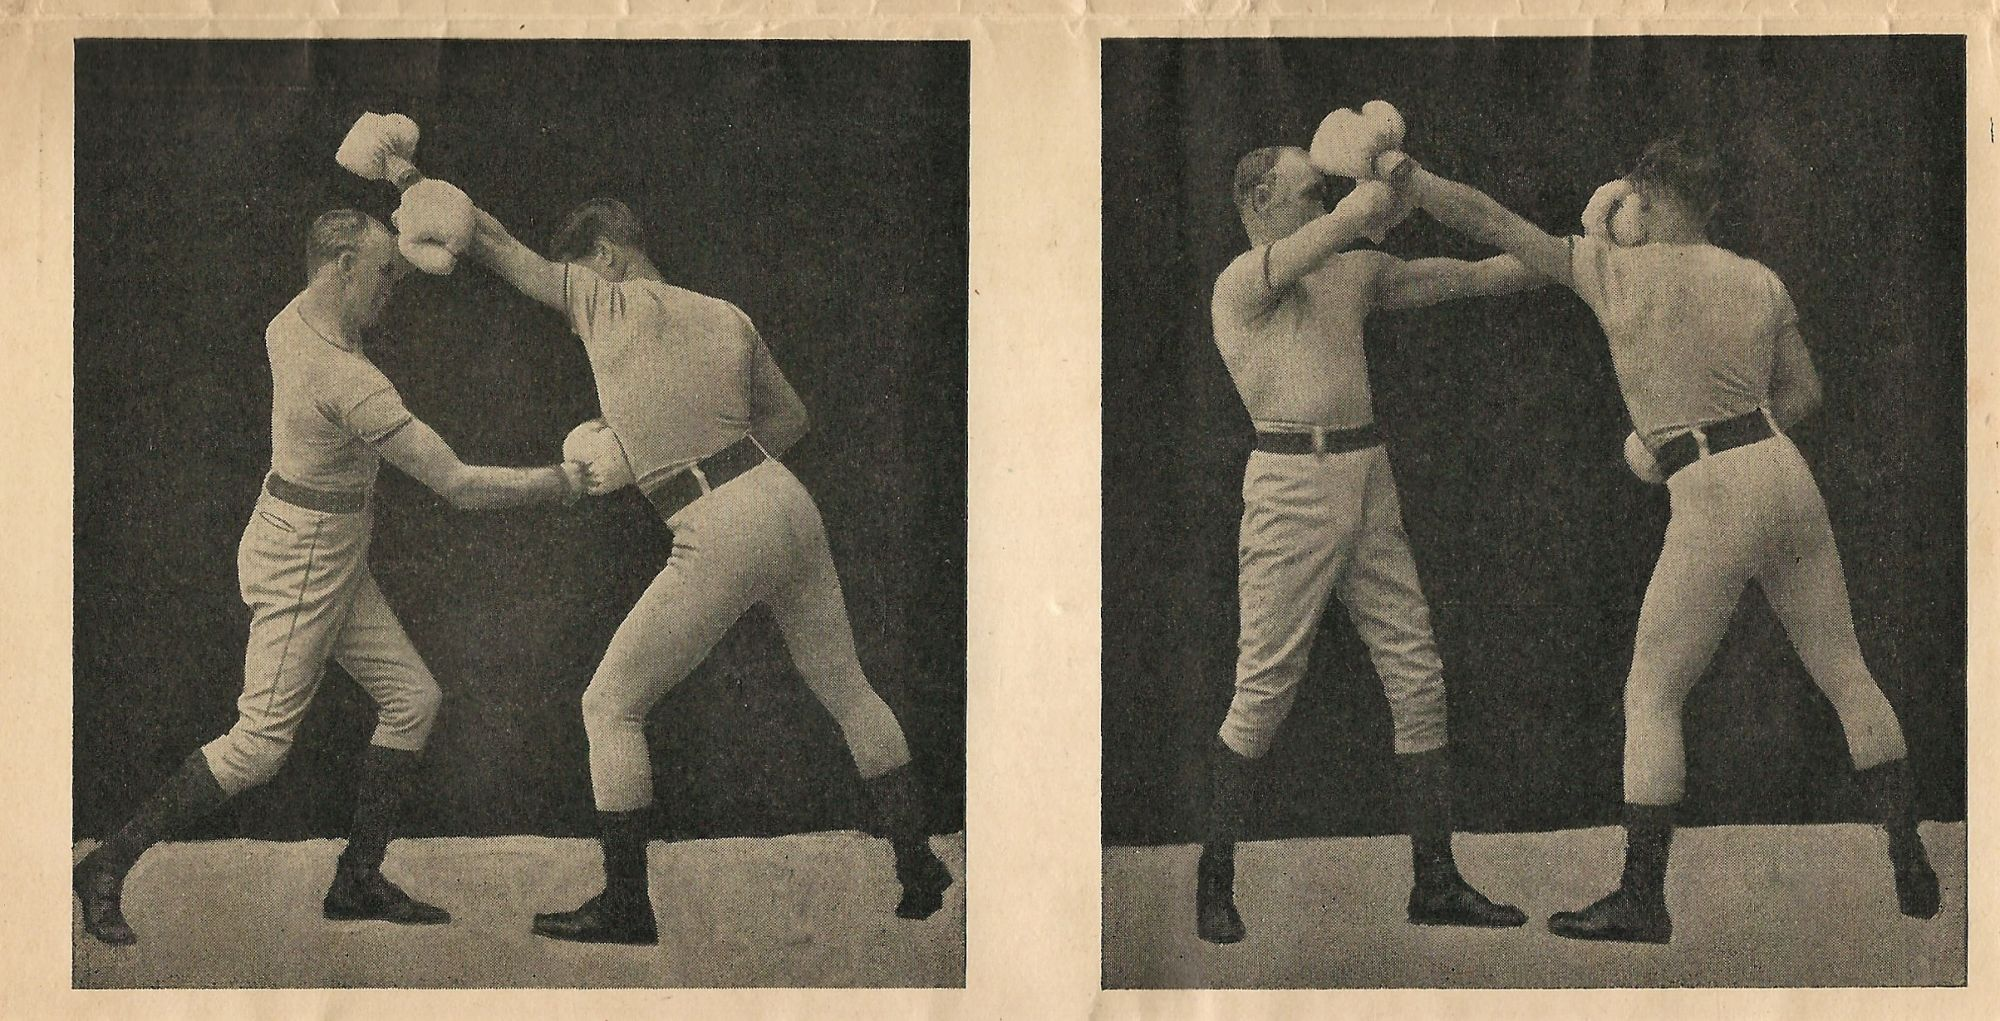 Details about Marshall Stillman Method Self Defense Jiu-Jitsu Boxing 1920s  Athletic Club NYC